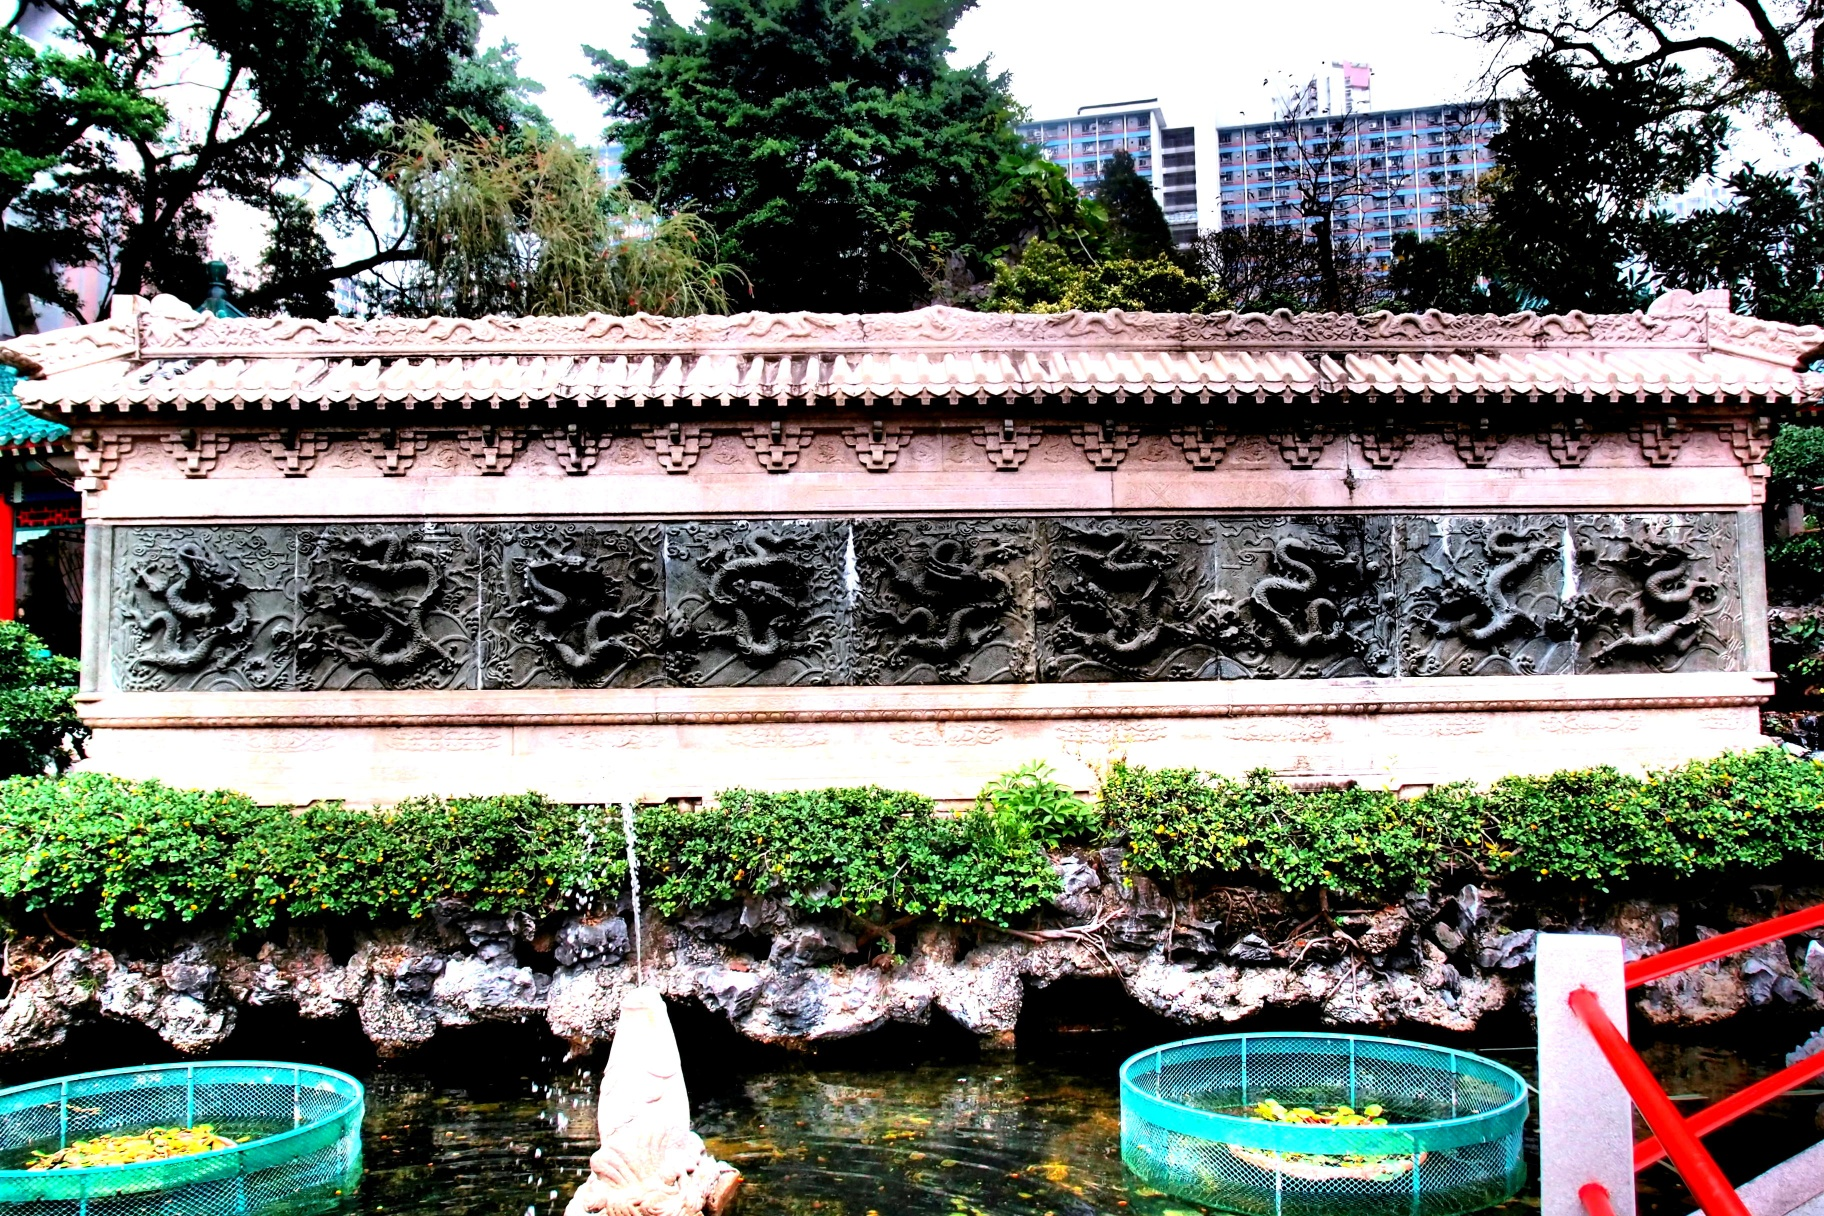 The Nine Dragon Wall at the Sik Sik Yuen Wong Tai Sin Temple